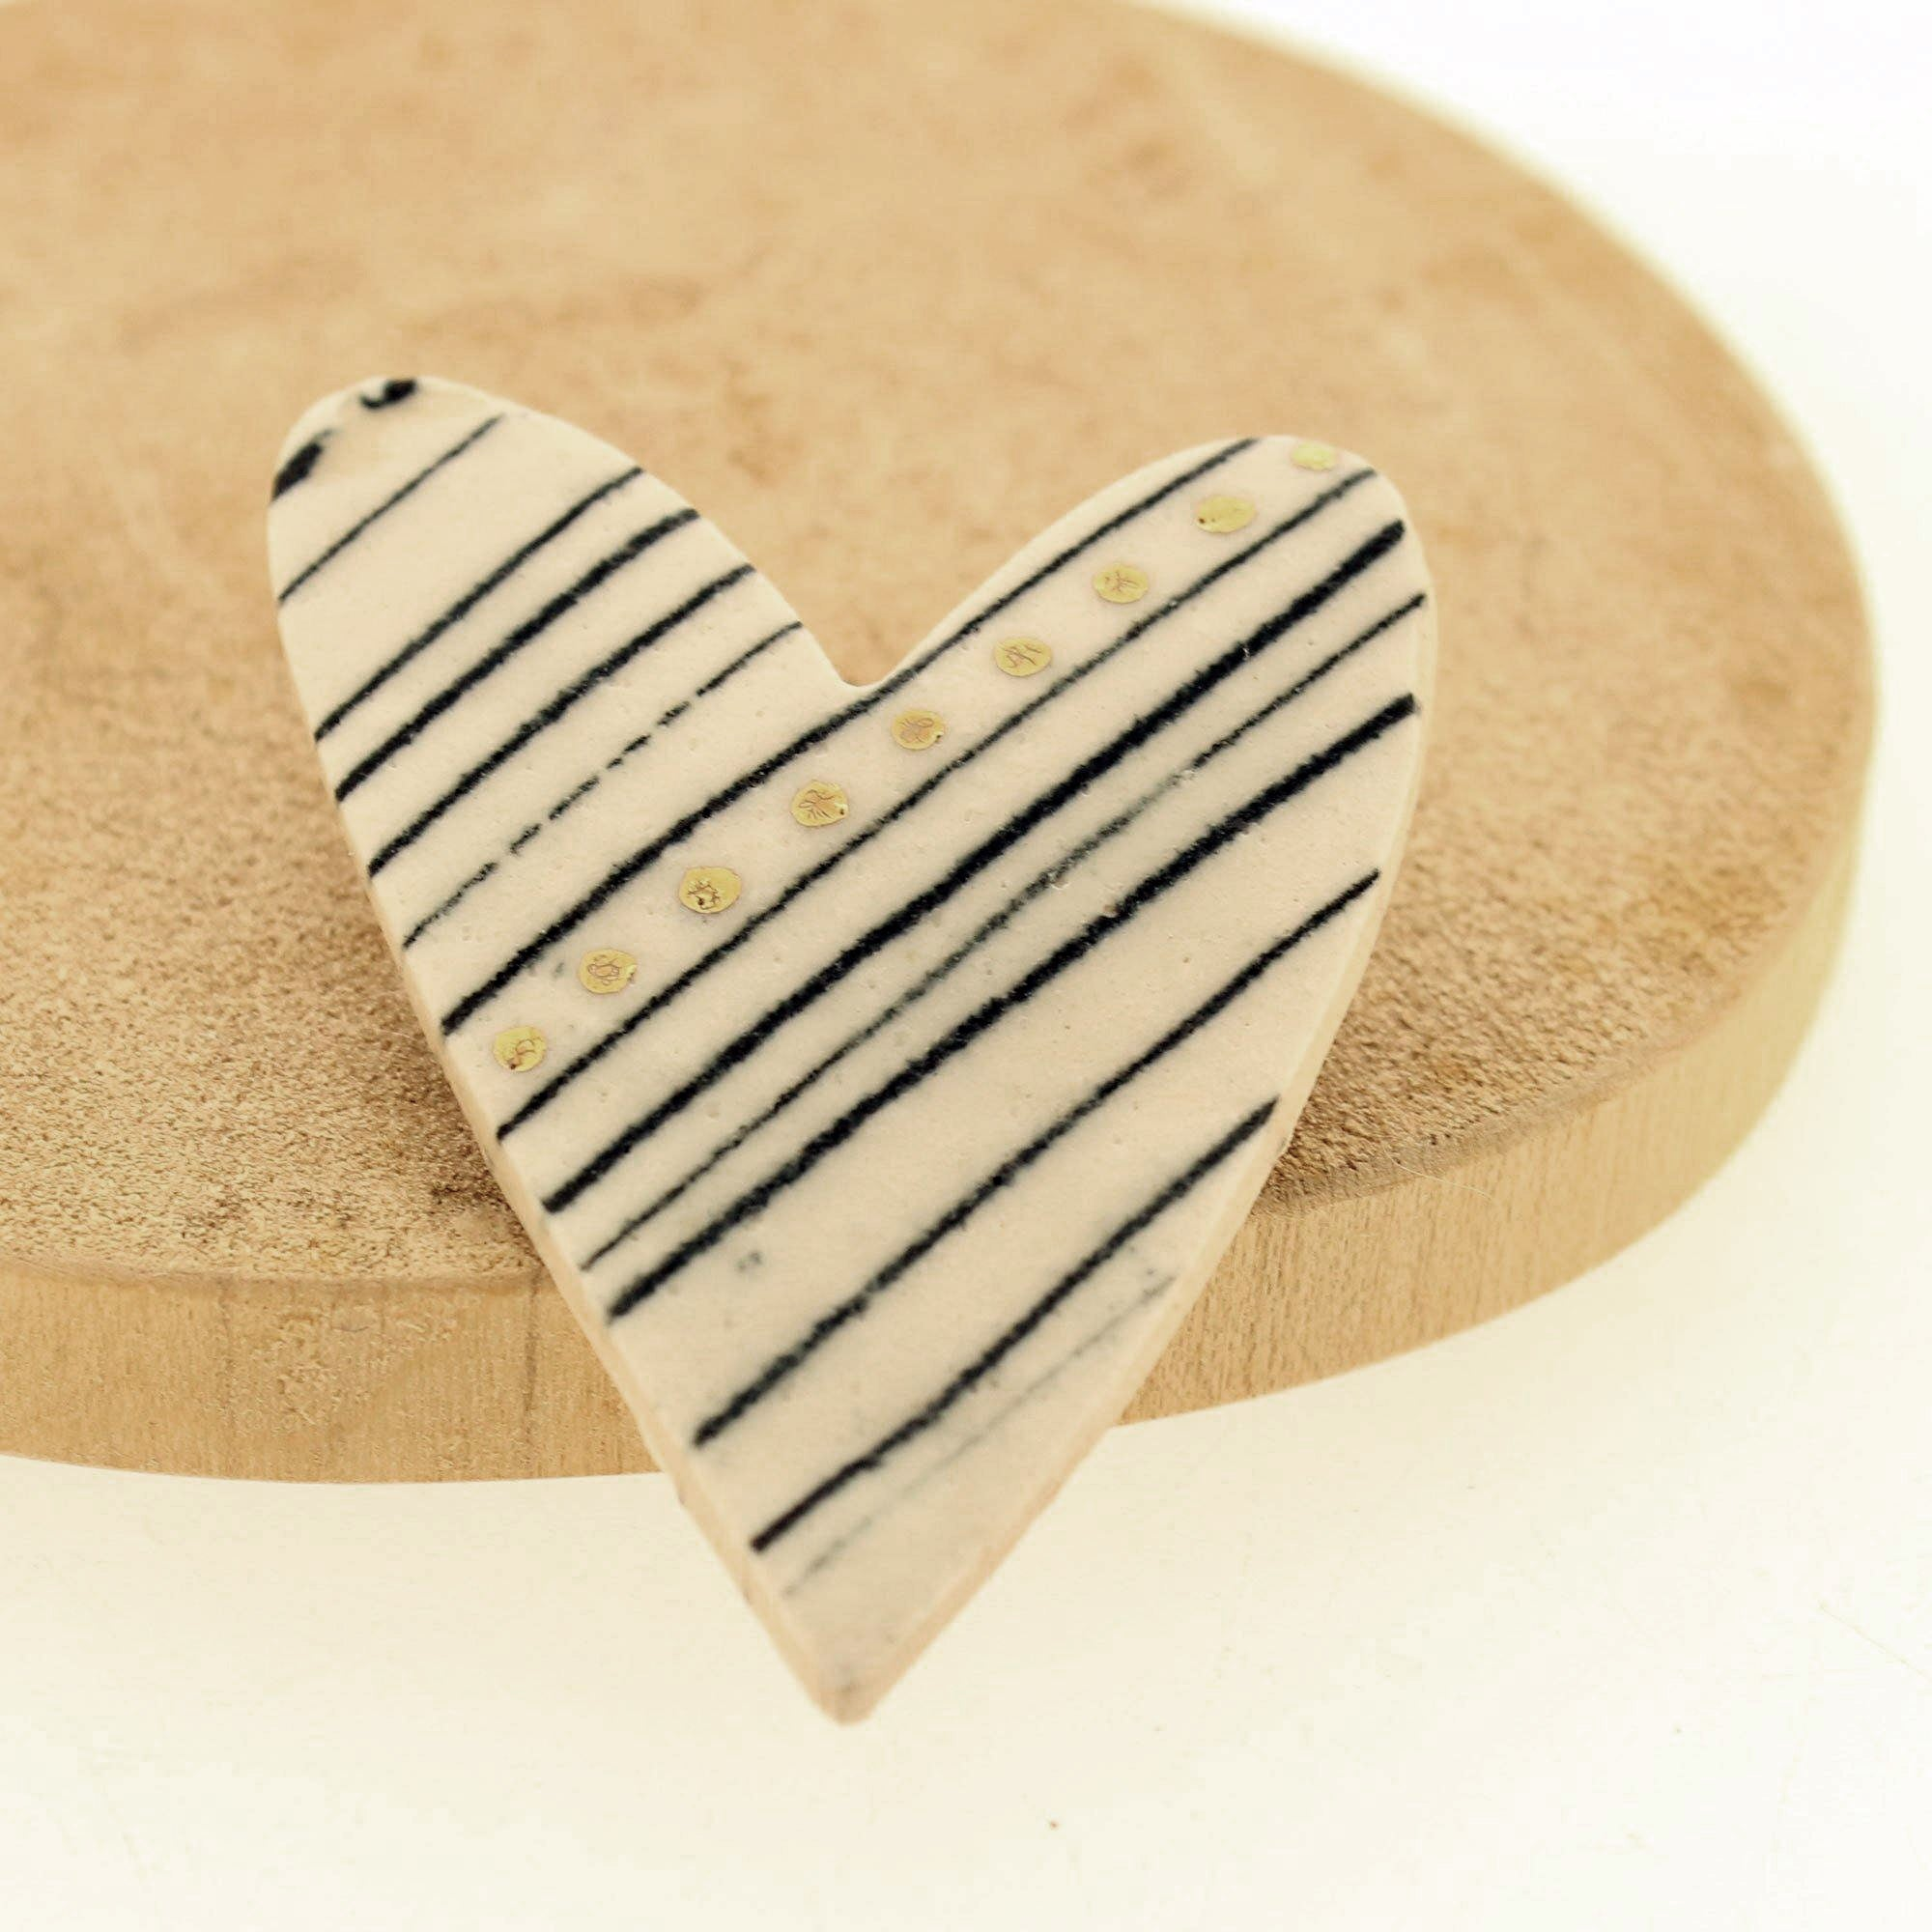 Gold Lustre Stripe Detail Ceramic Heart Brooch, Building Toys by Insideout